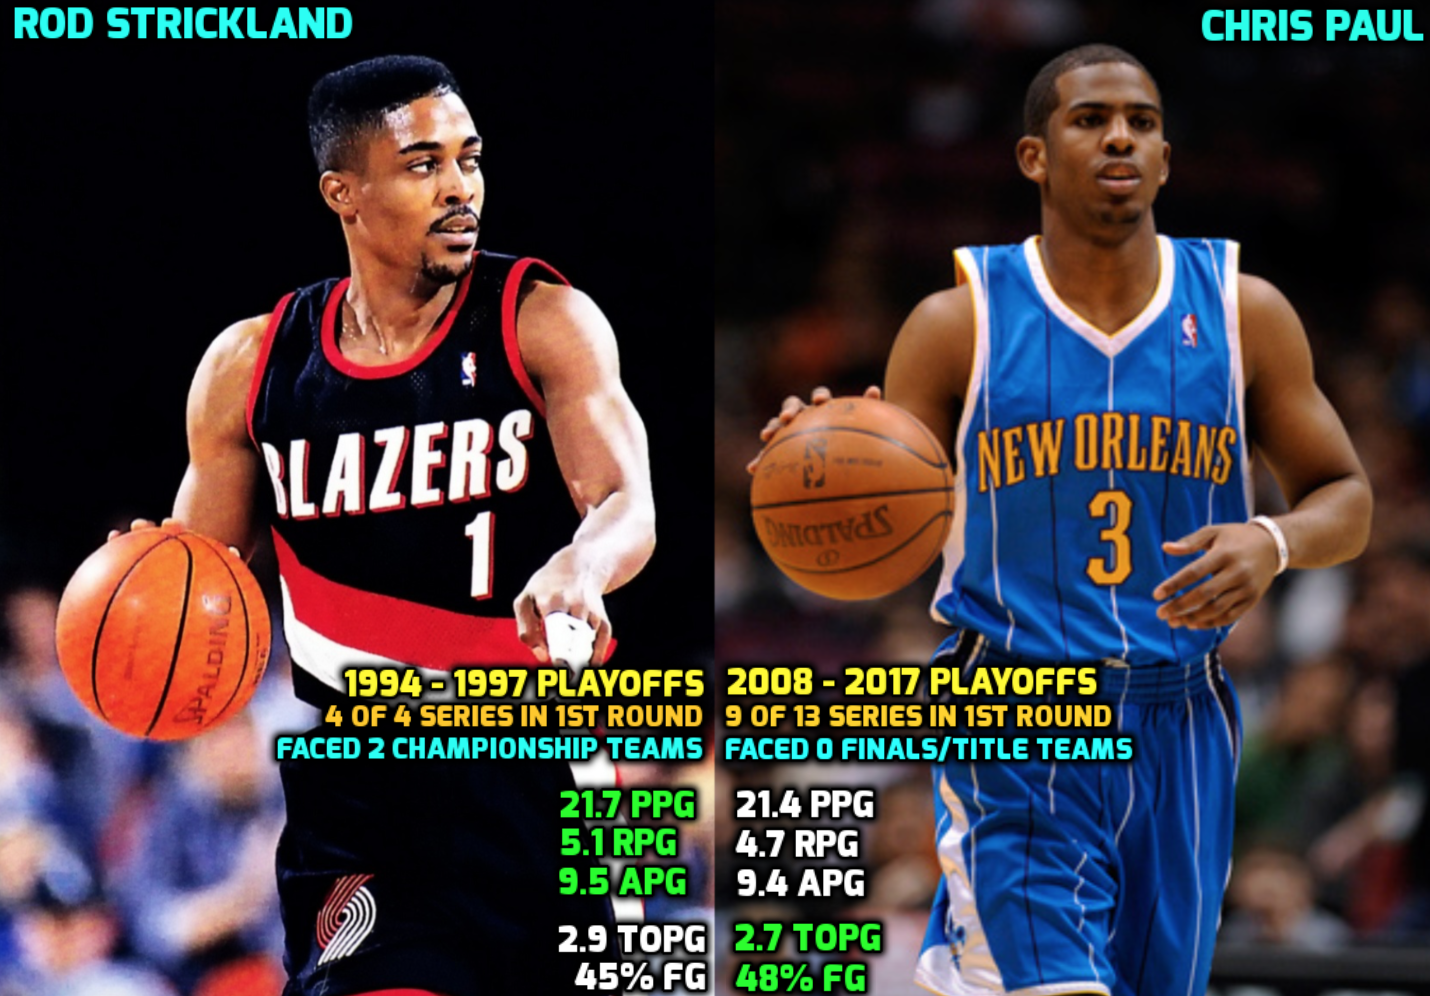 SECTION 3 - Why Chris Paul's Playoff Statistics Are Not as ...